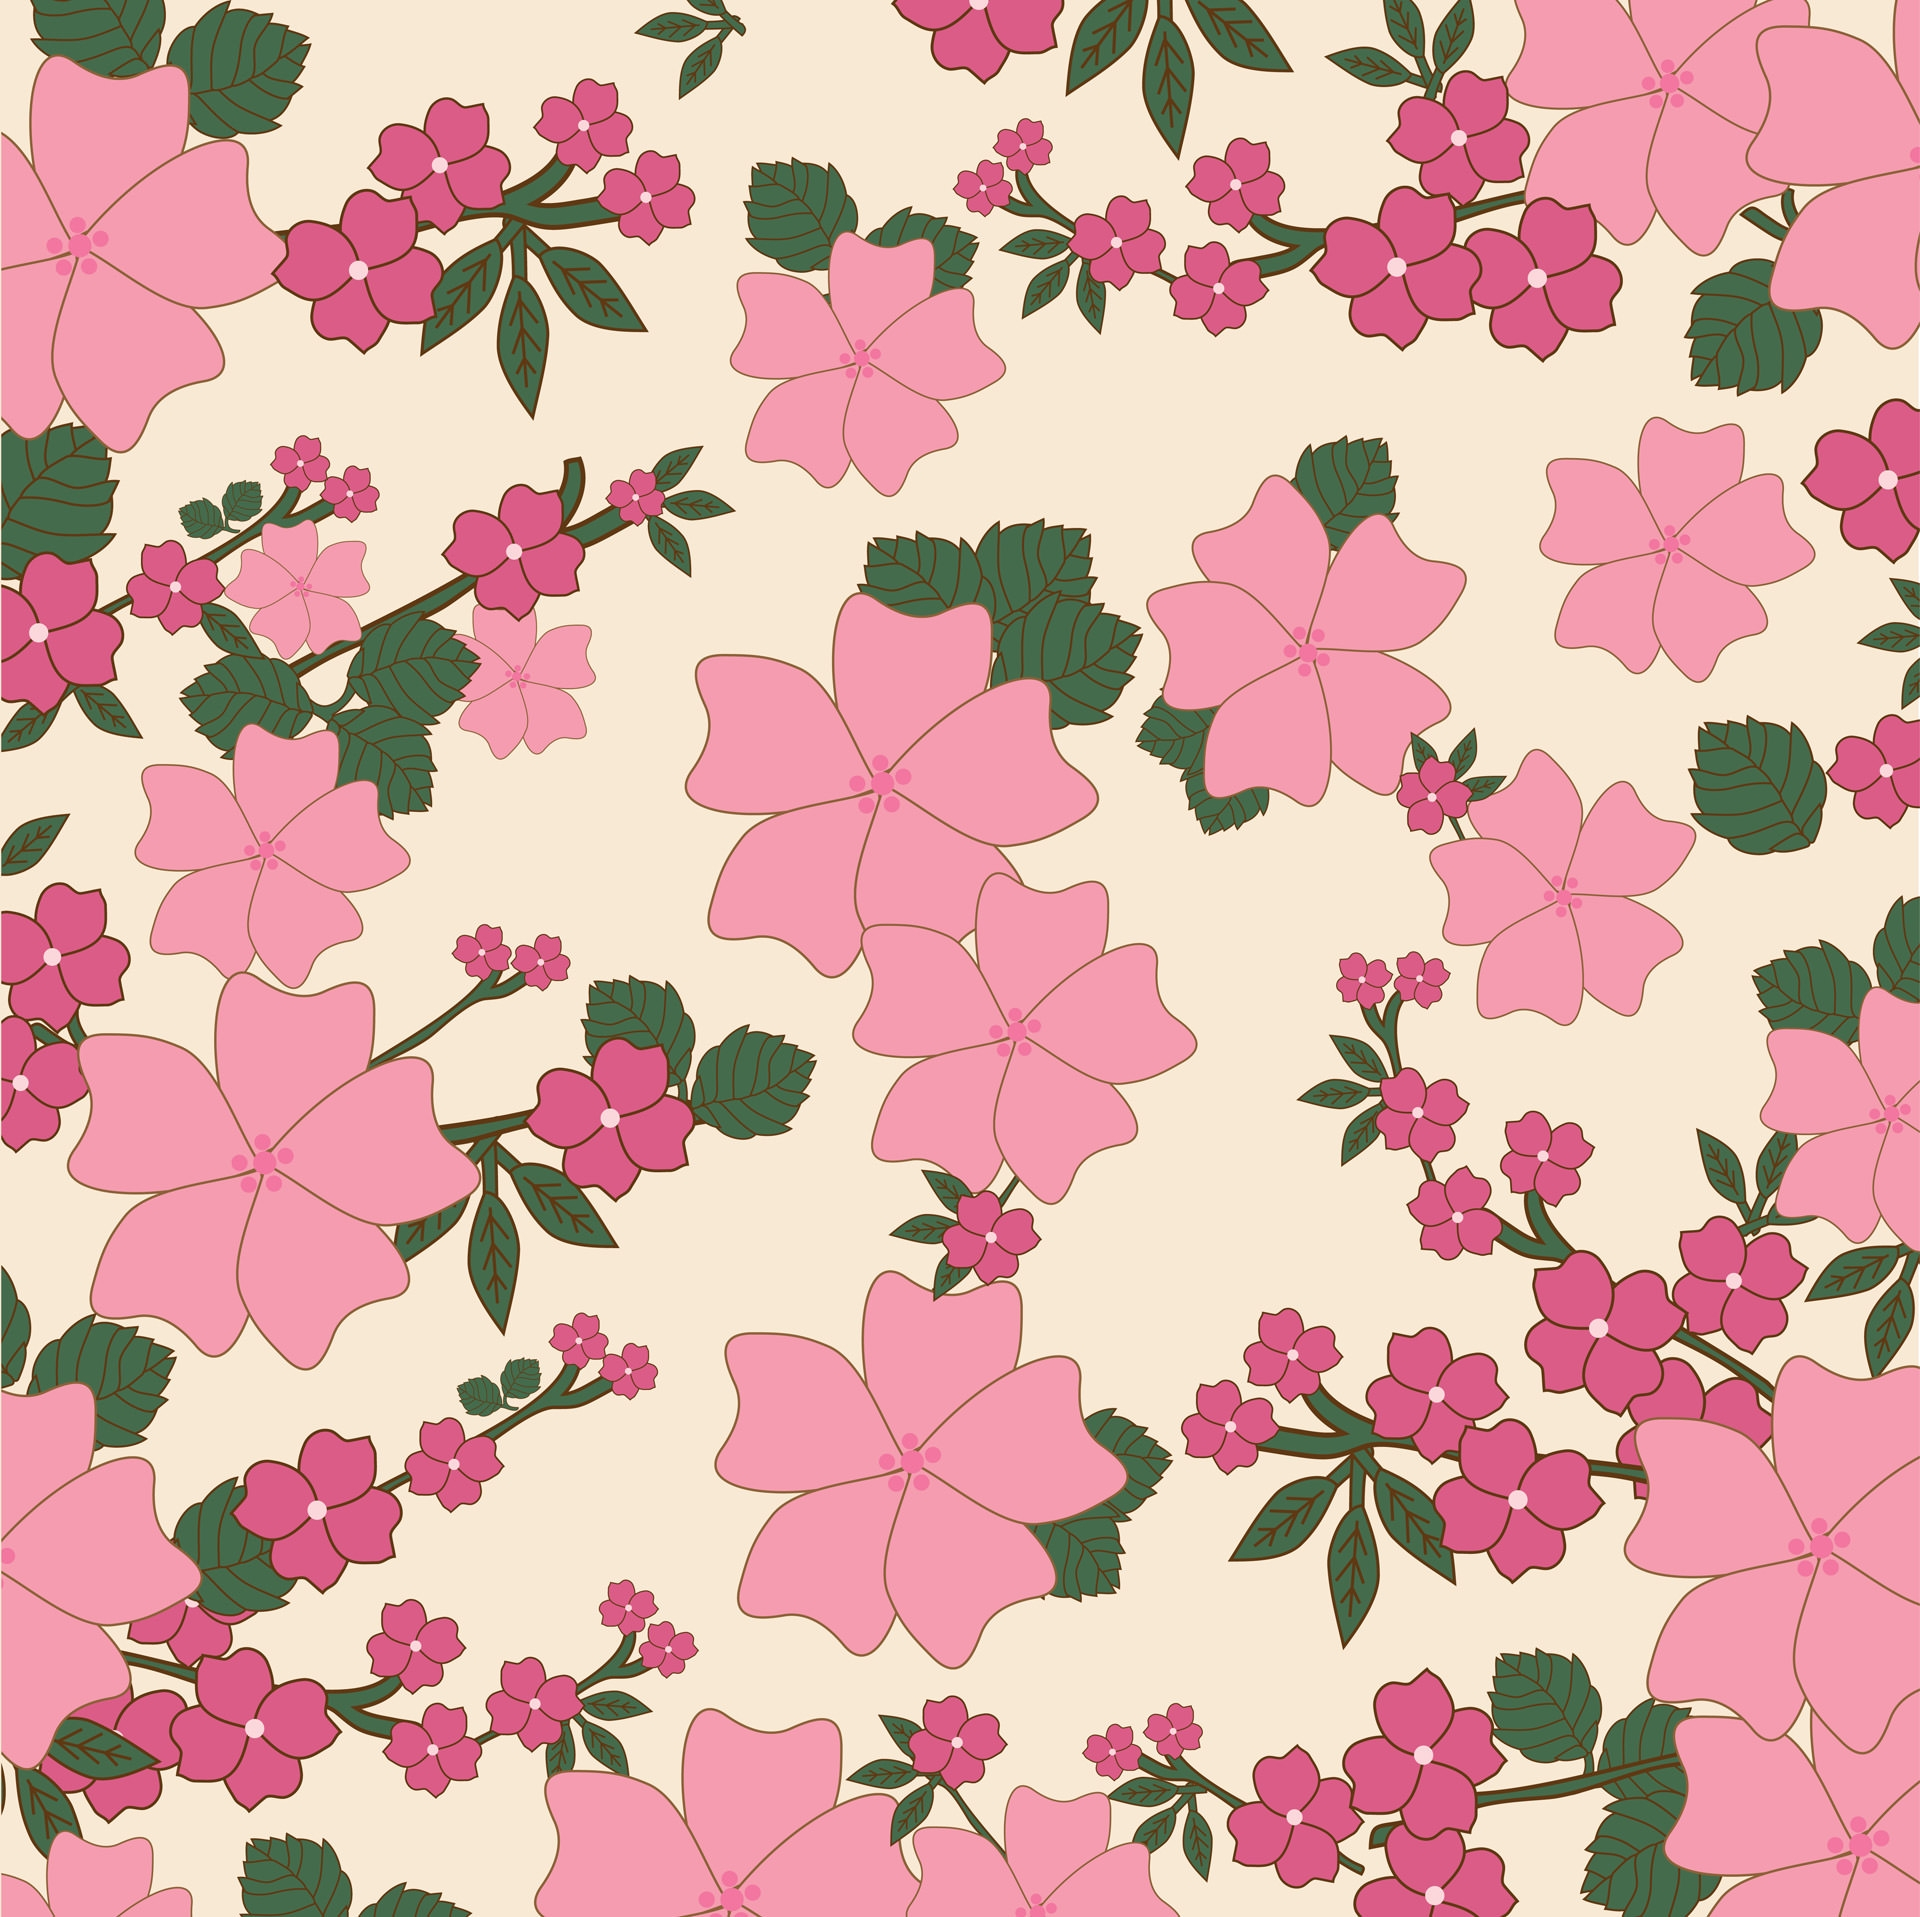 Download 15+ Free Floral Vintage Wallpapers